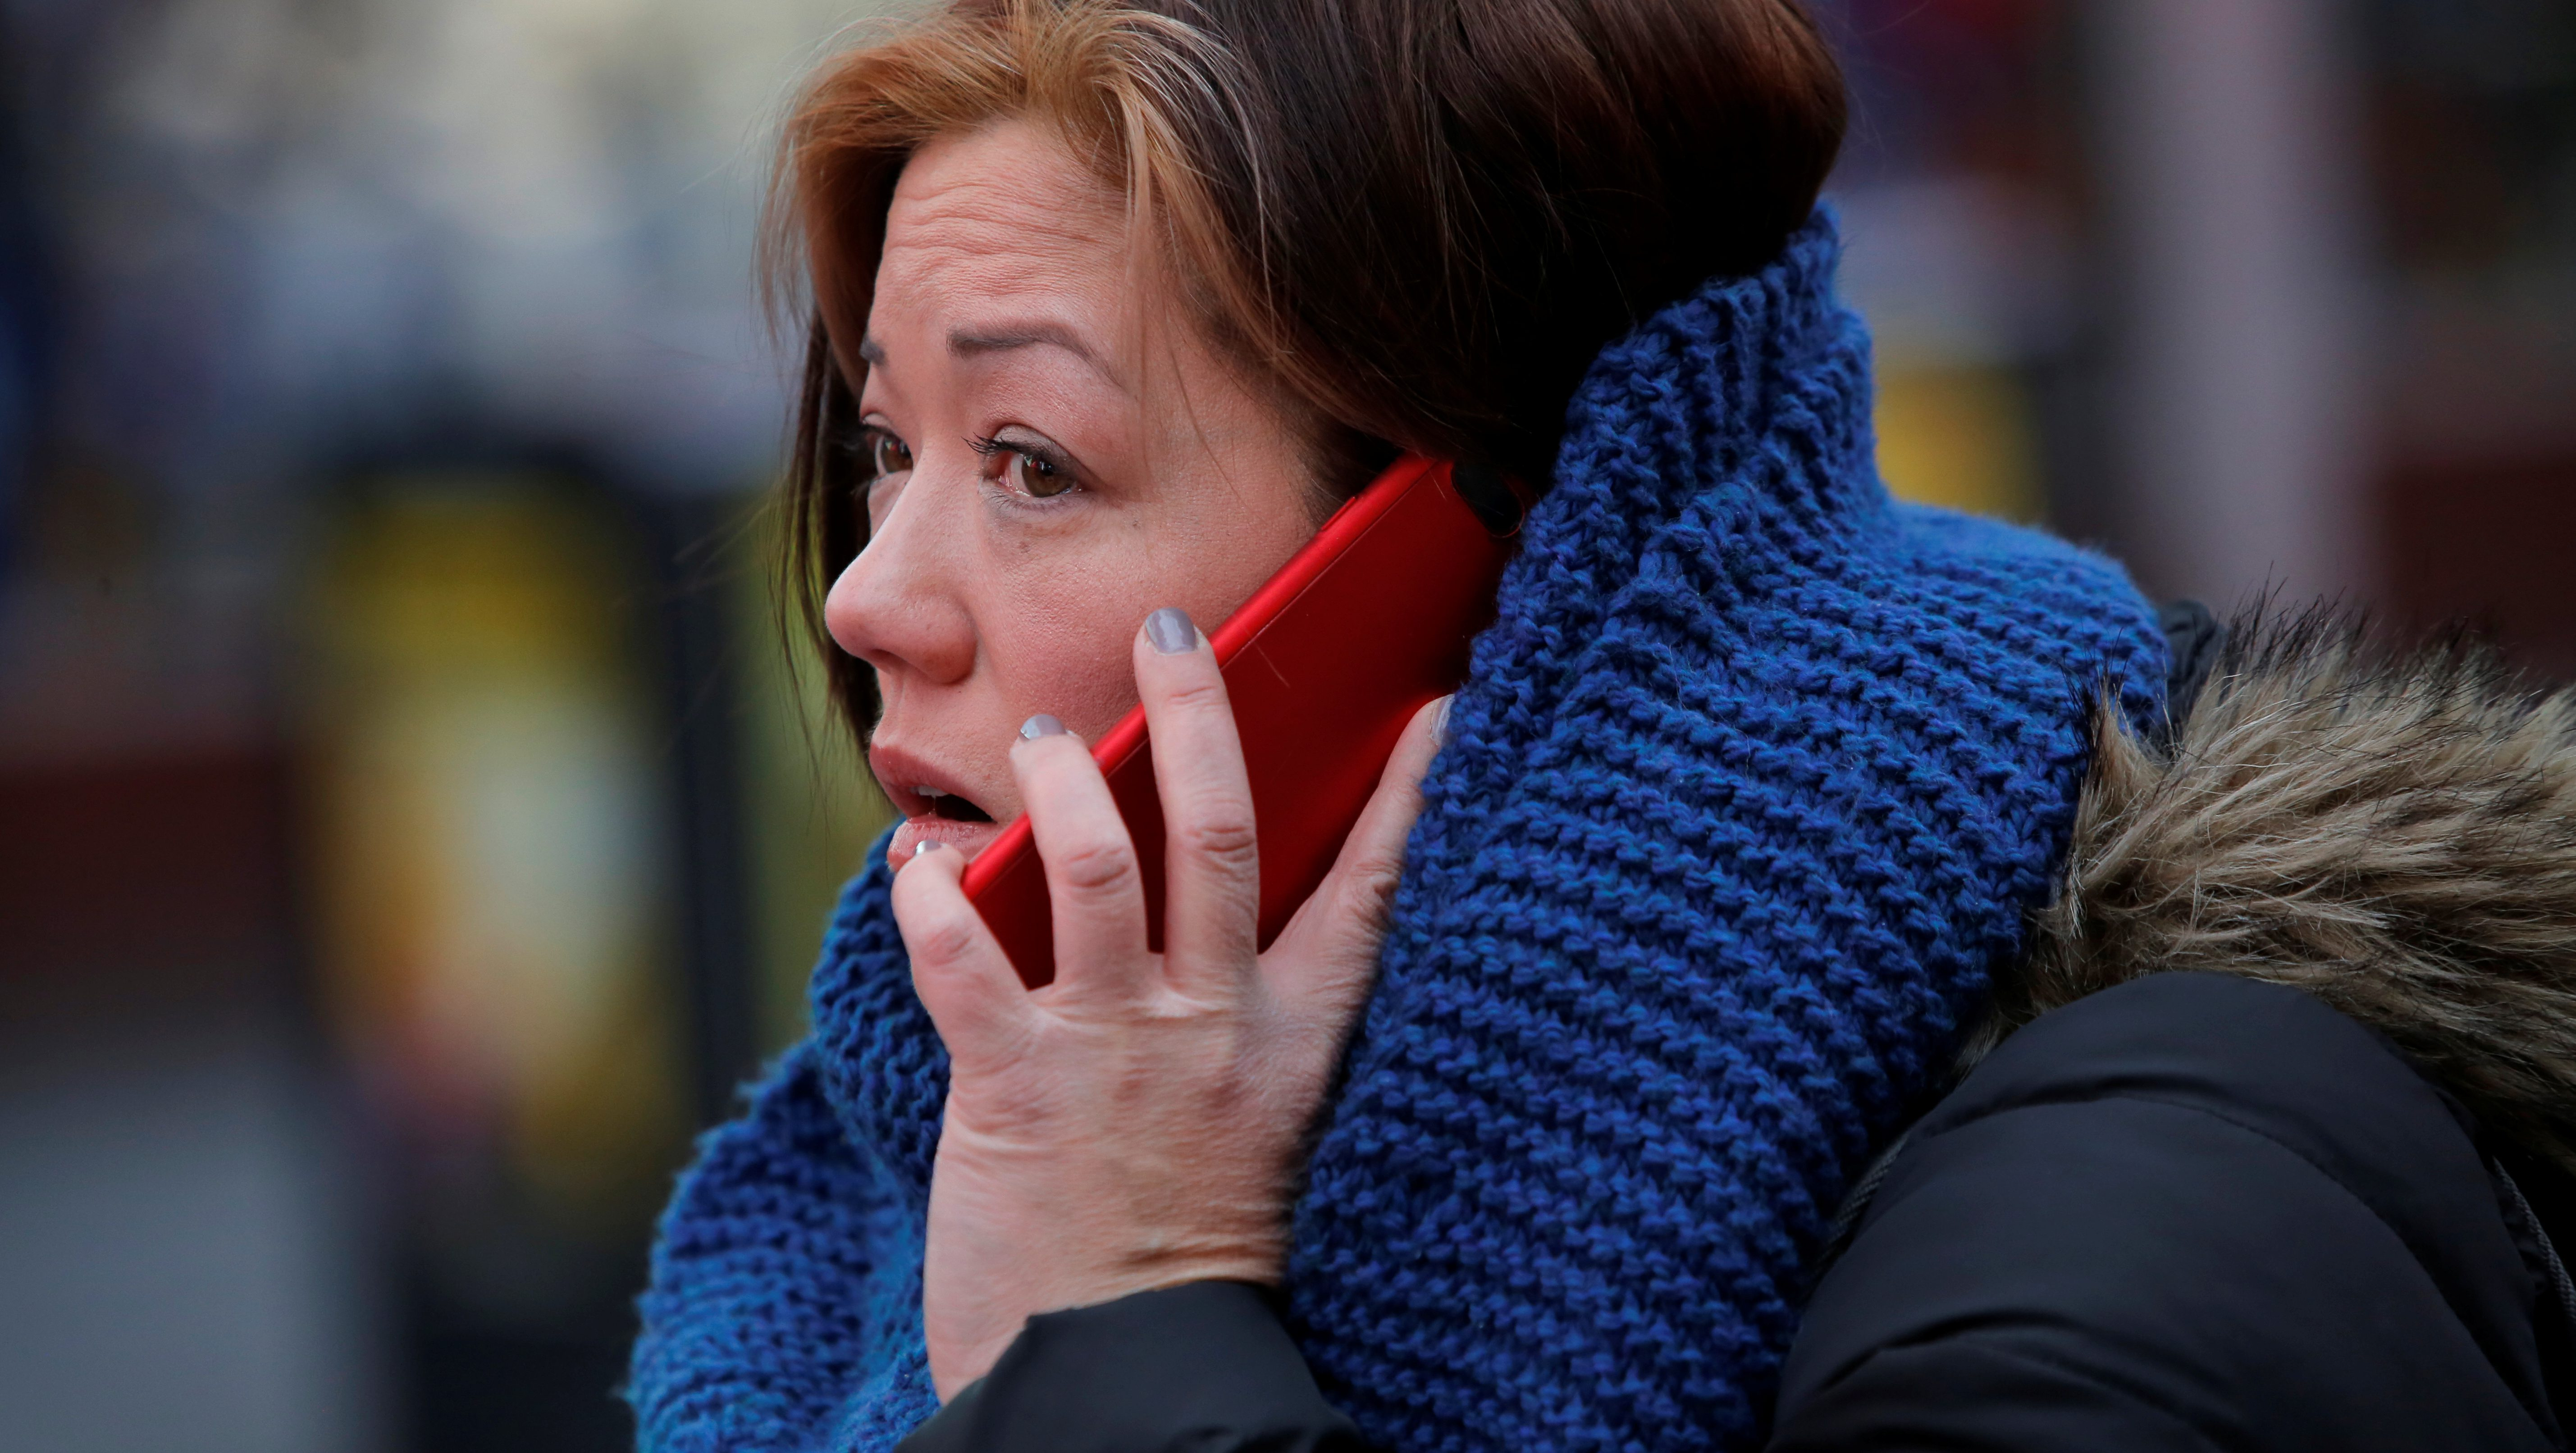 A woman uses her cell phone in Manhattan, New York